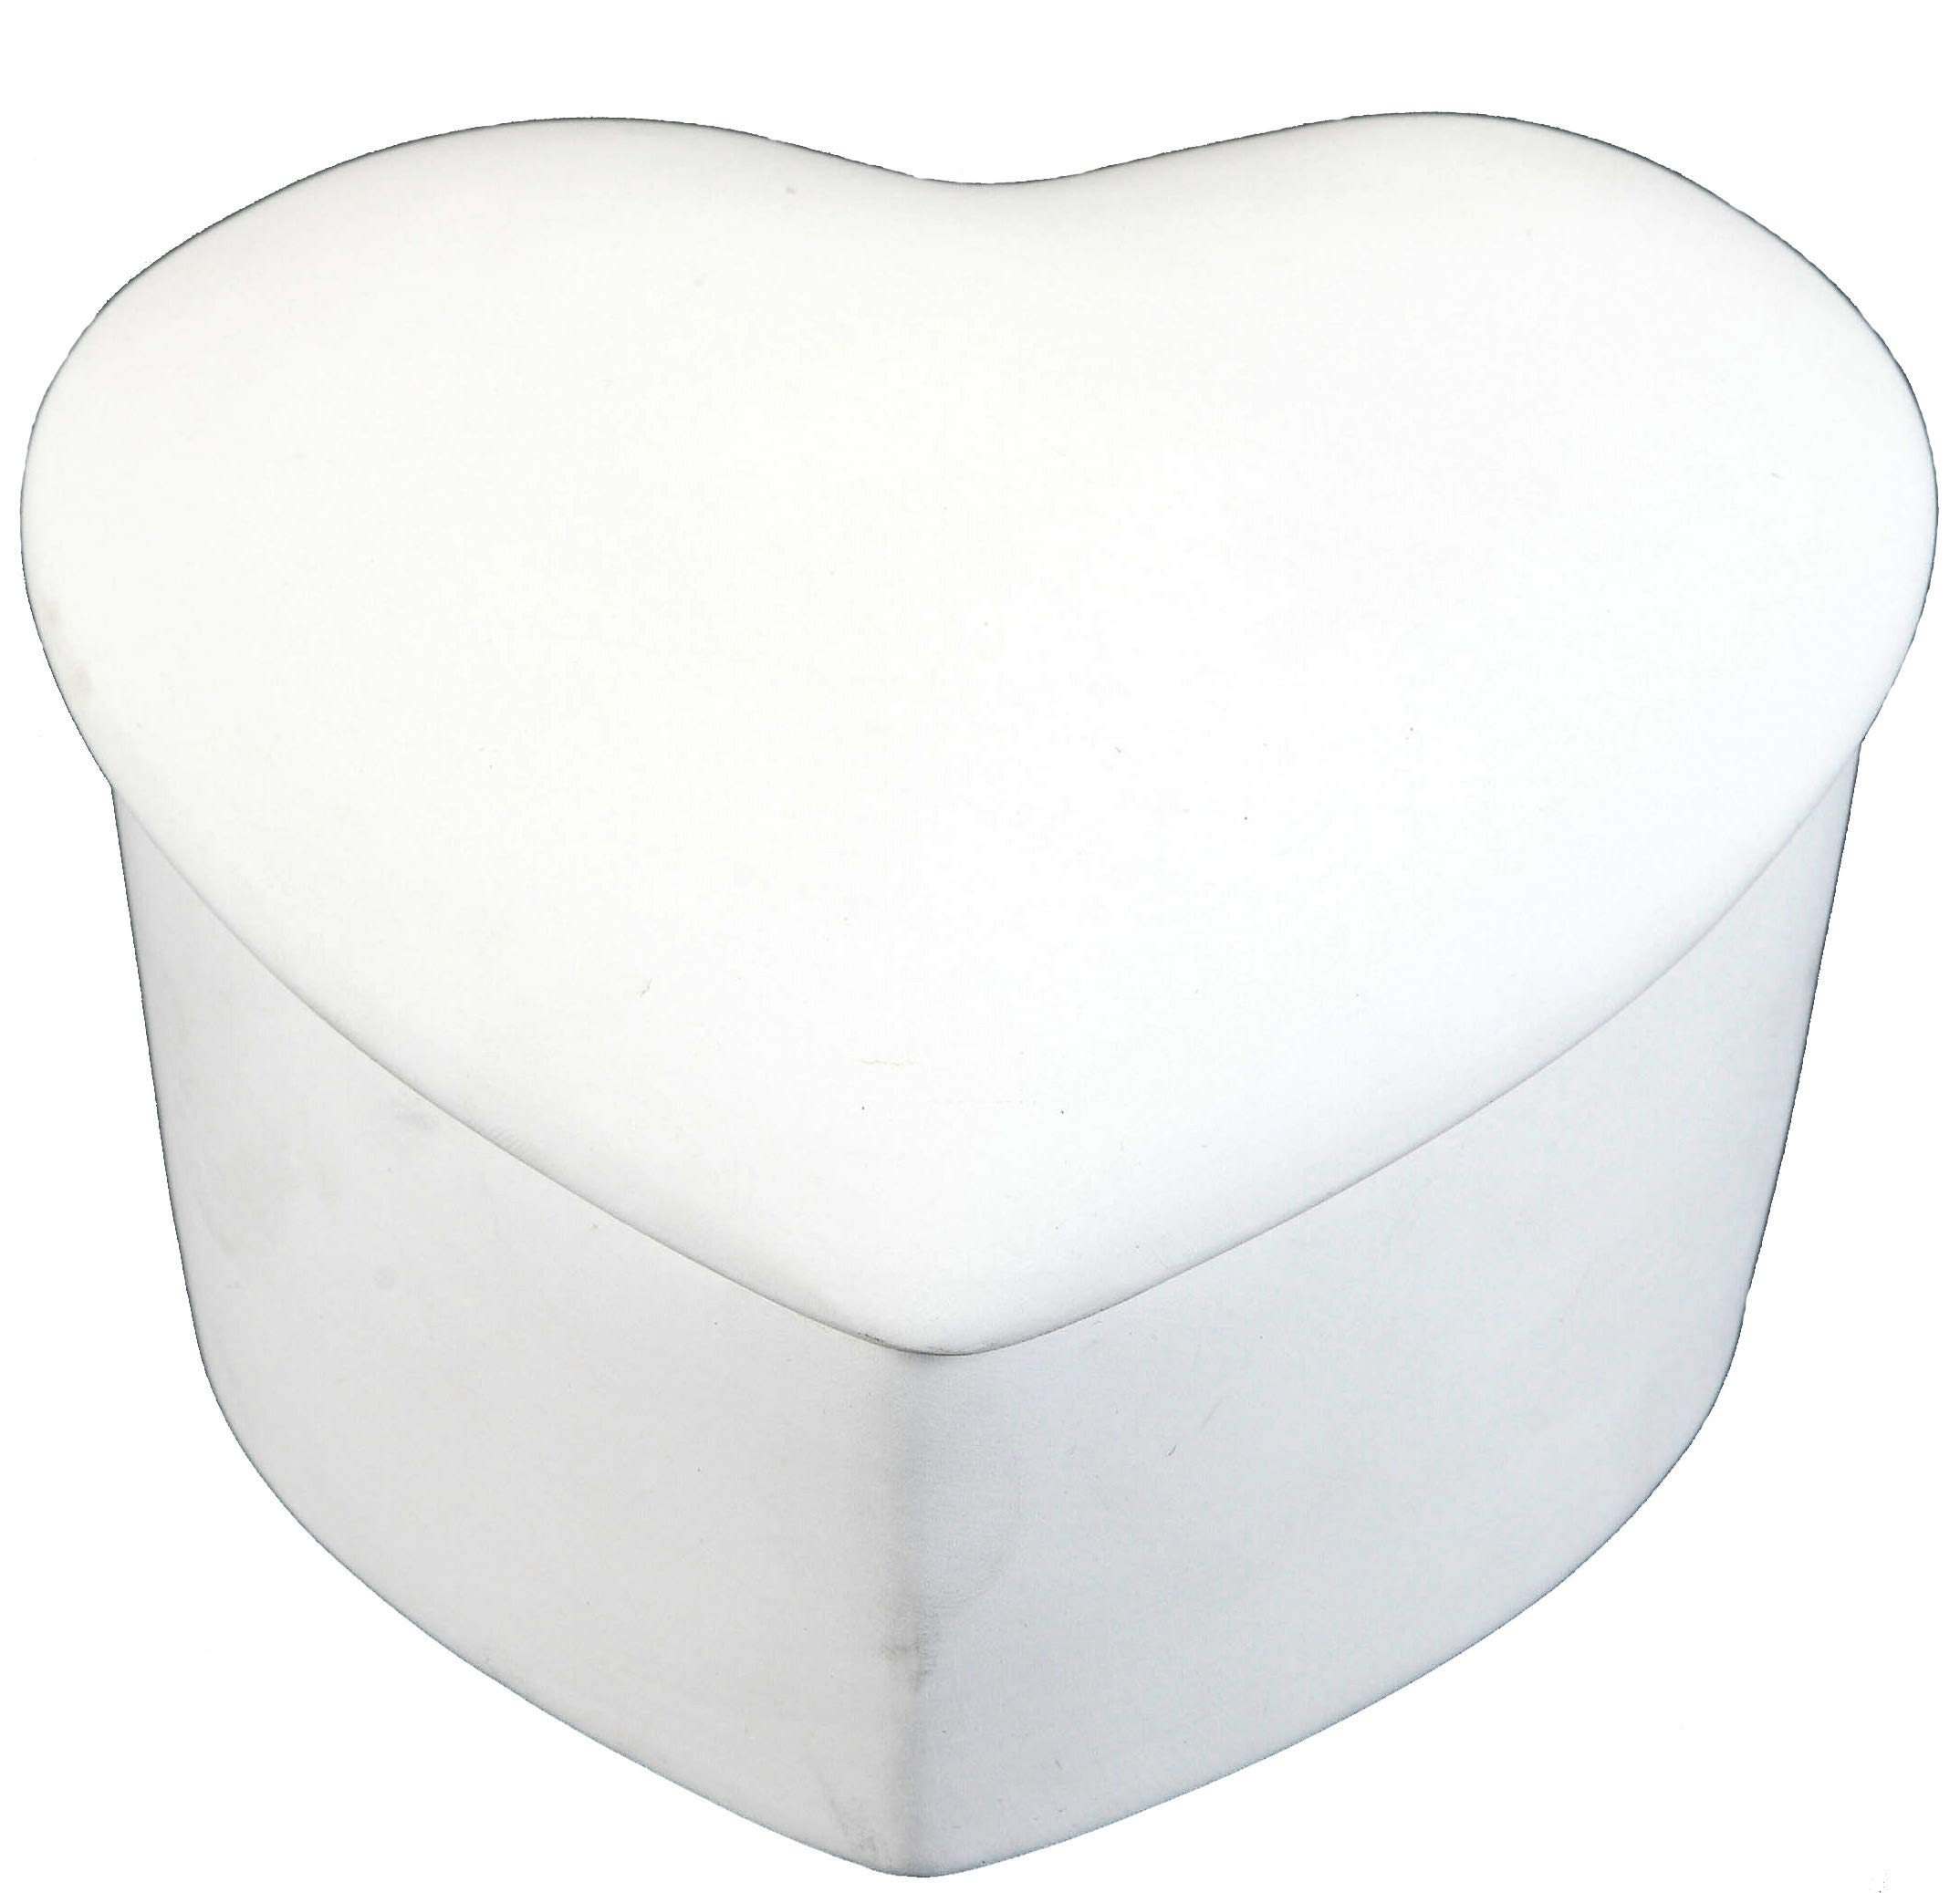 Creative Hobbies Slant Heart Box, Case of 6, Unfinished Ceramic Bisque, with How to Paint Your Own Pottery Booklet